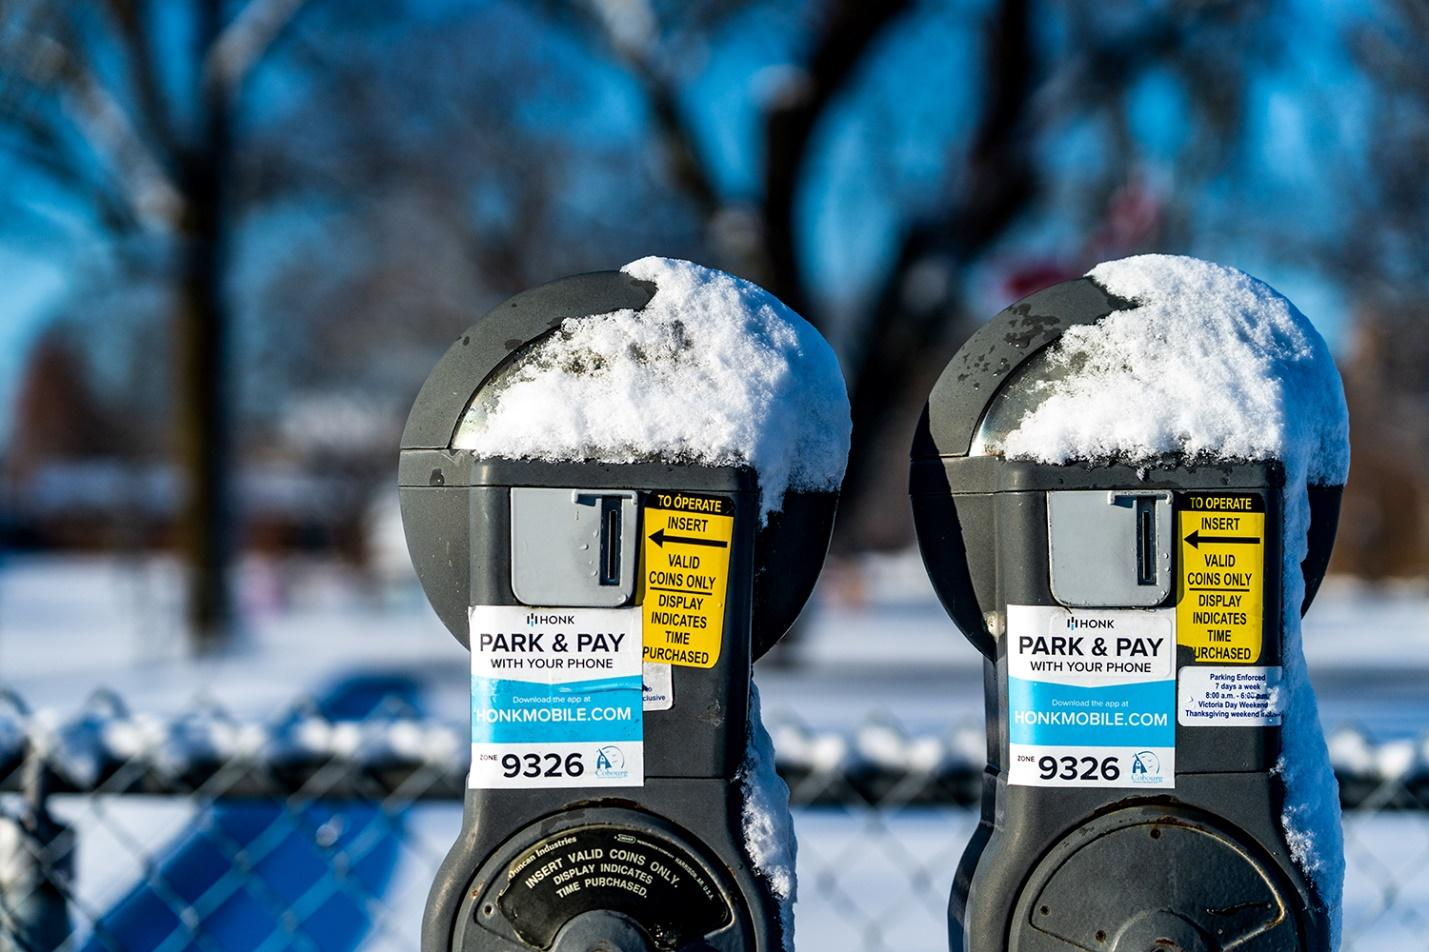 Two parking meters covered in snow after a winter storm.